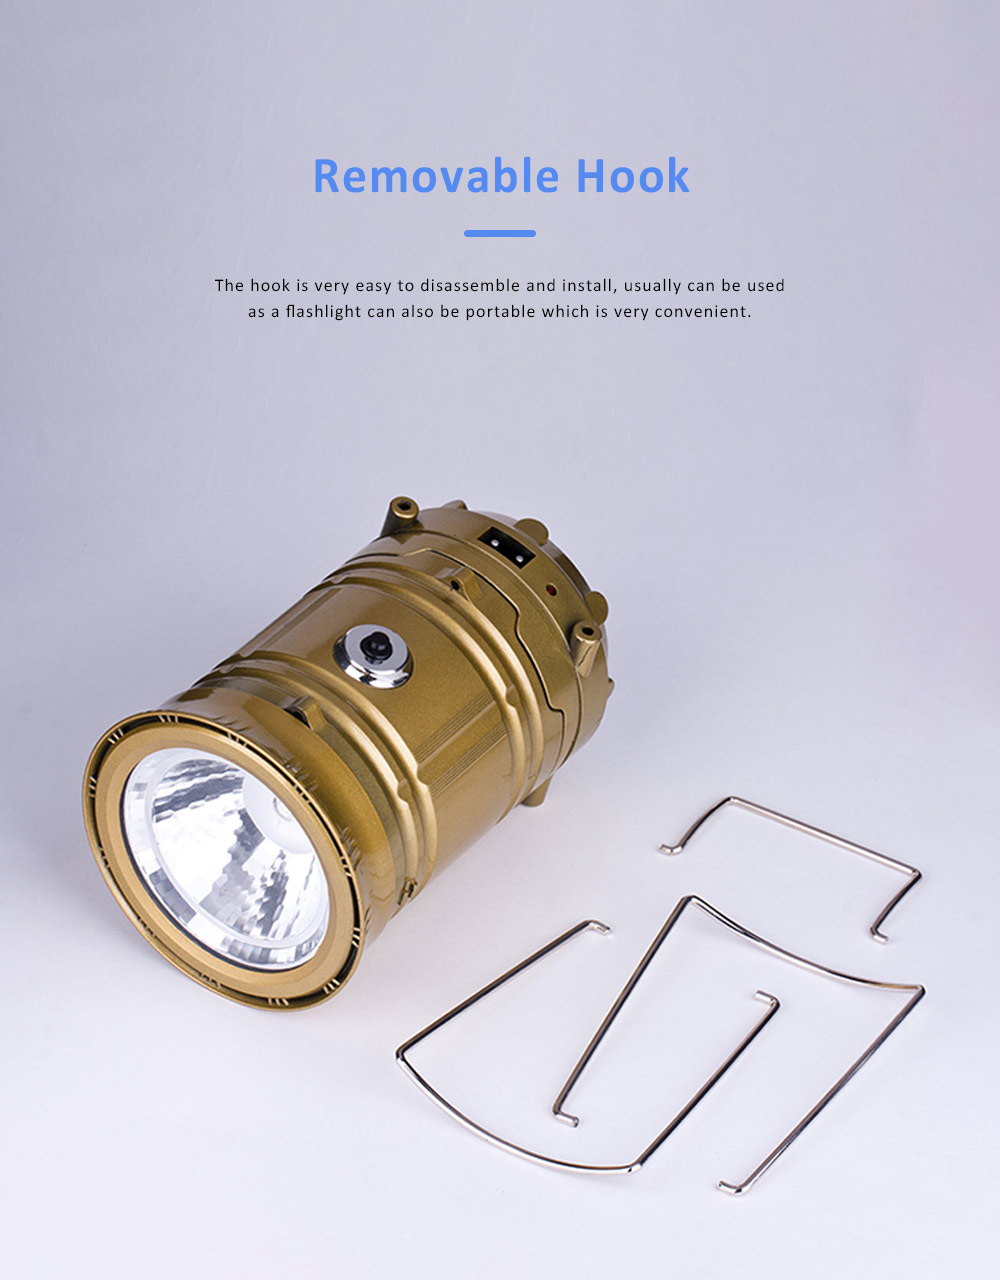 Stretchable Brightened Lantern for Camping, Hinking, Outdoors, Multifunctional Camping Lamp with Removable Hook, Two Charging Modes Lights 3